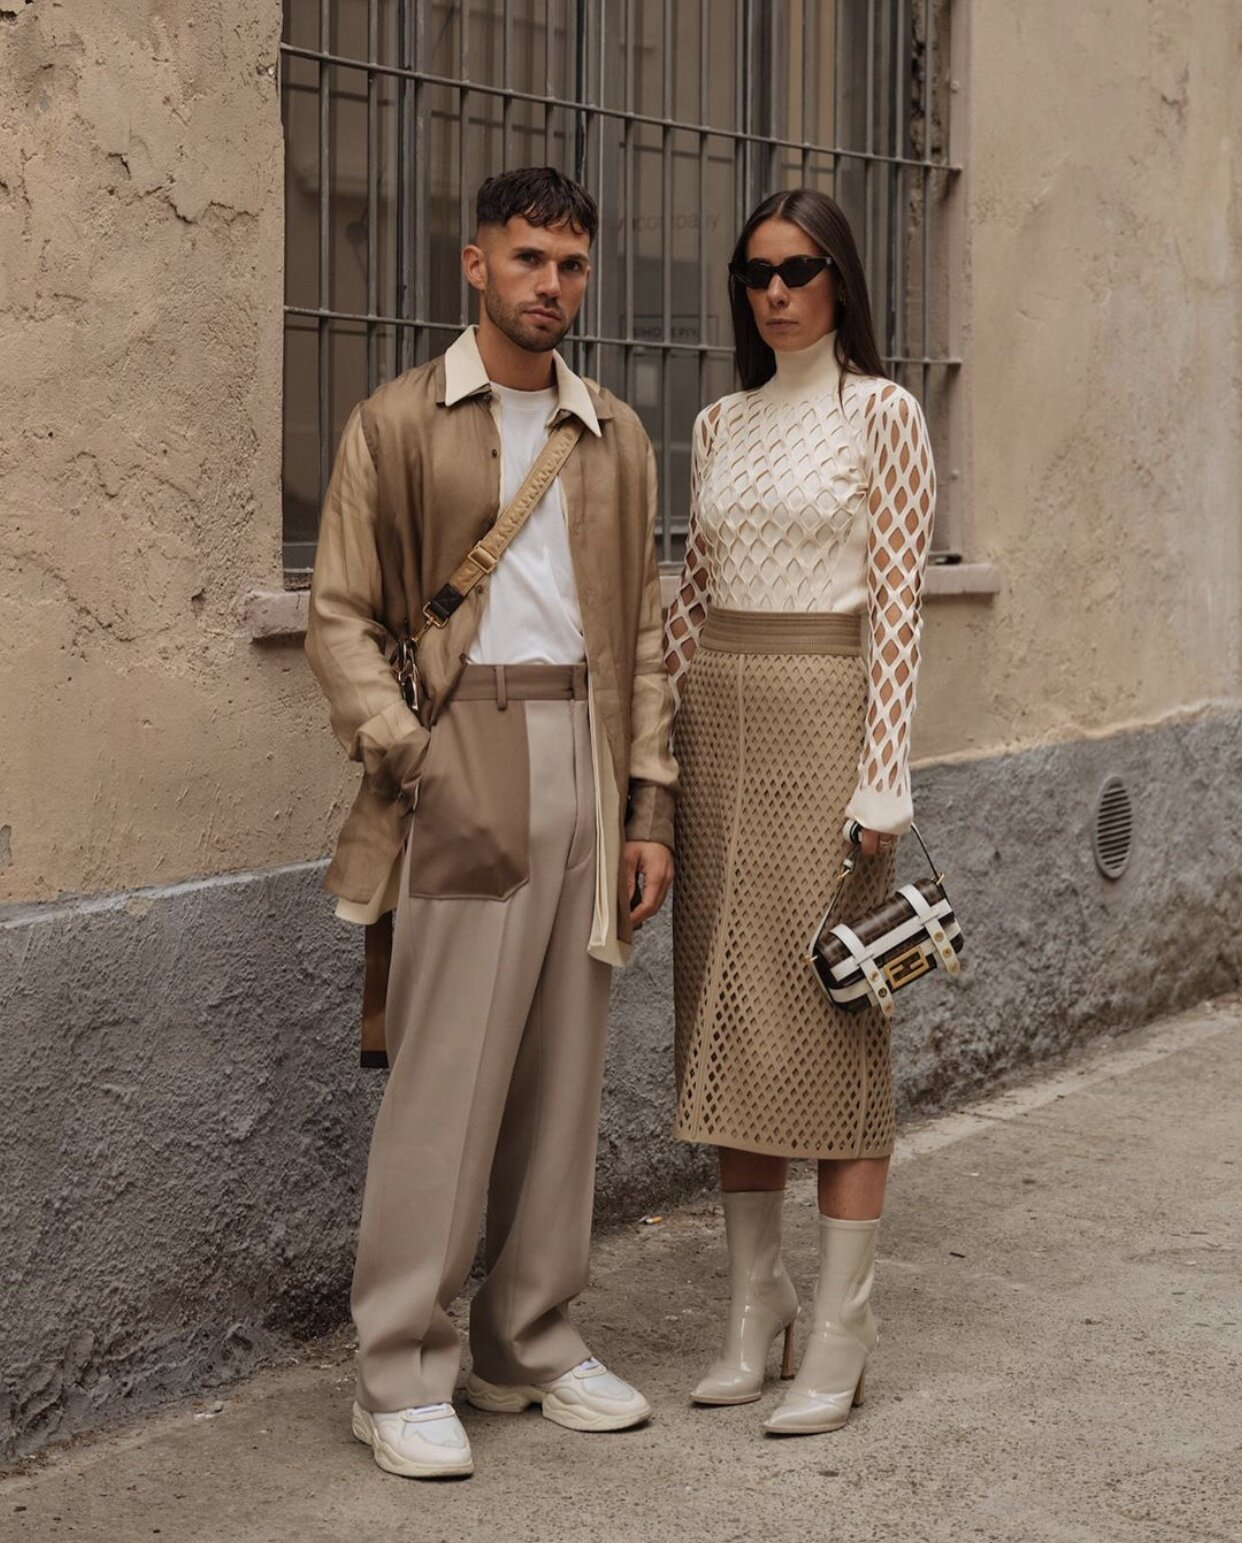 Alice Barbier & js Roques for PAUSE Magazine